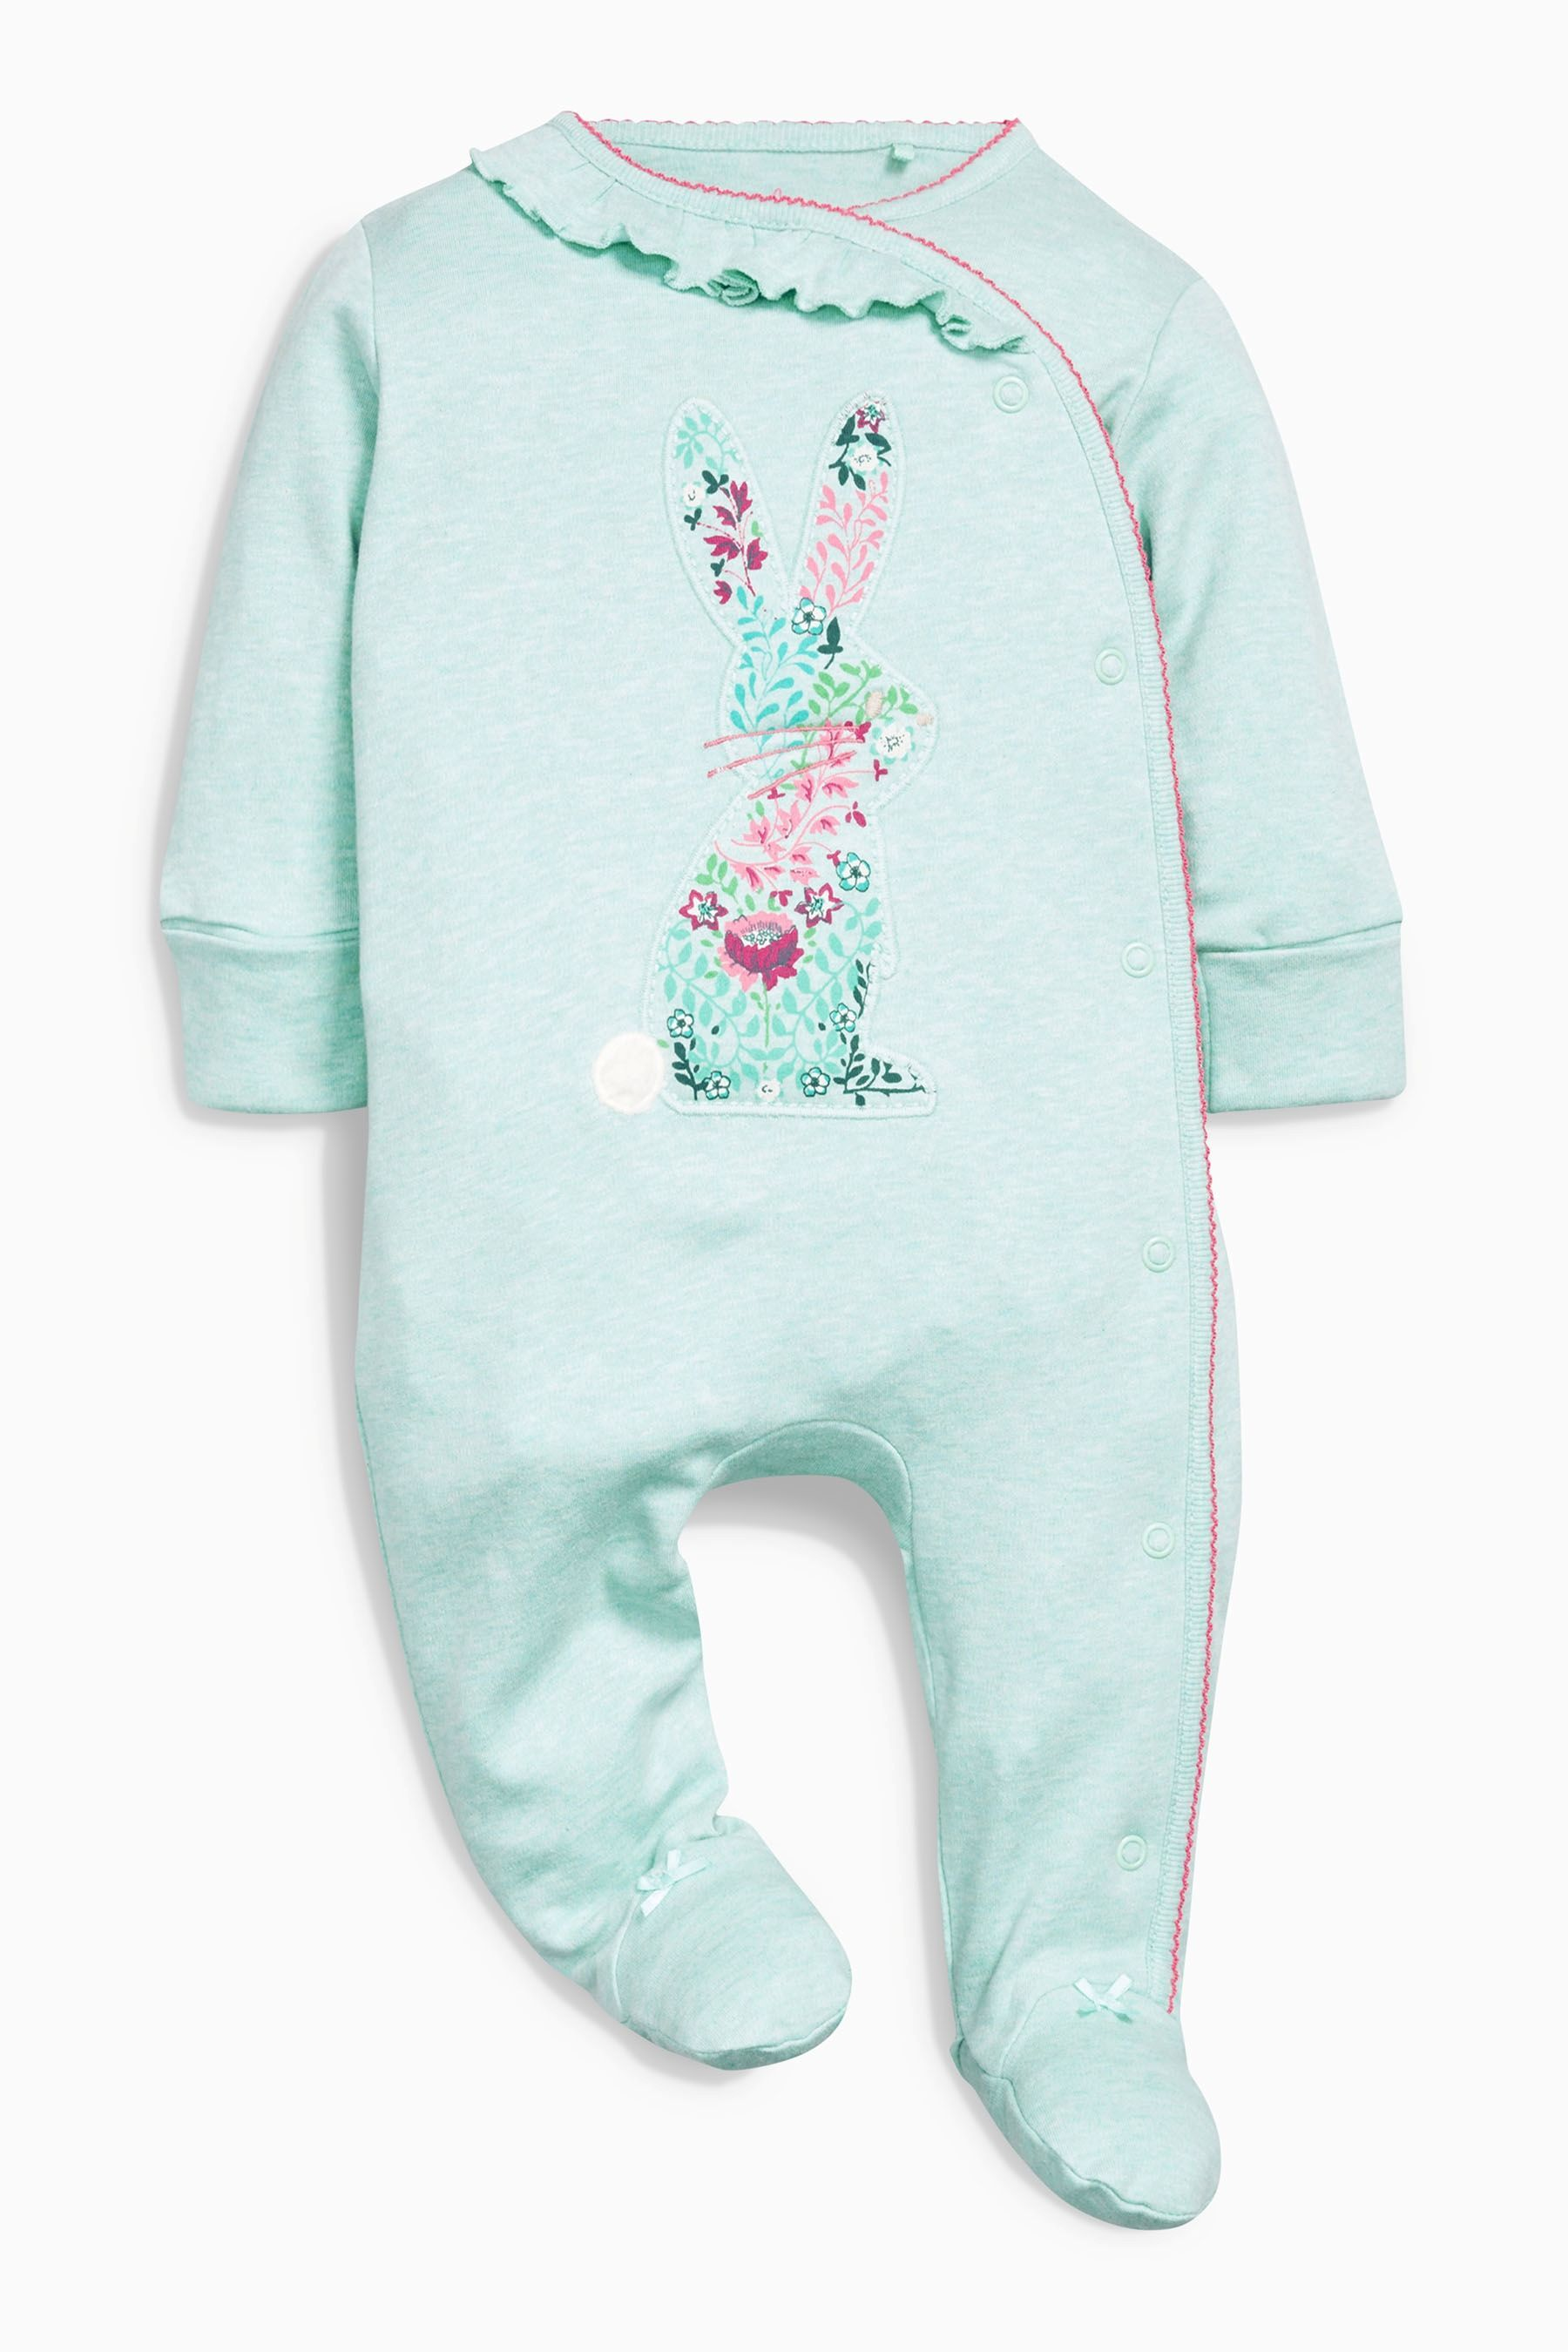 Buy Teal Bunny Sleepsuits Three Pack 0mths 2yrs from the Next UK